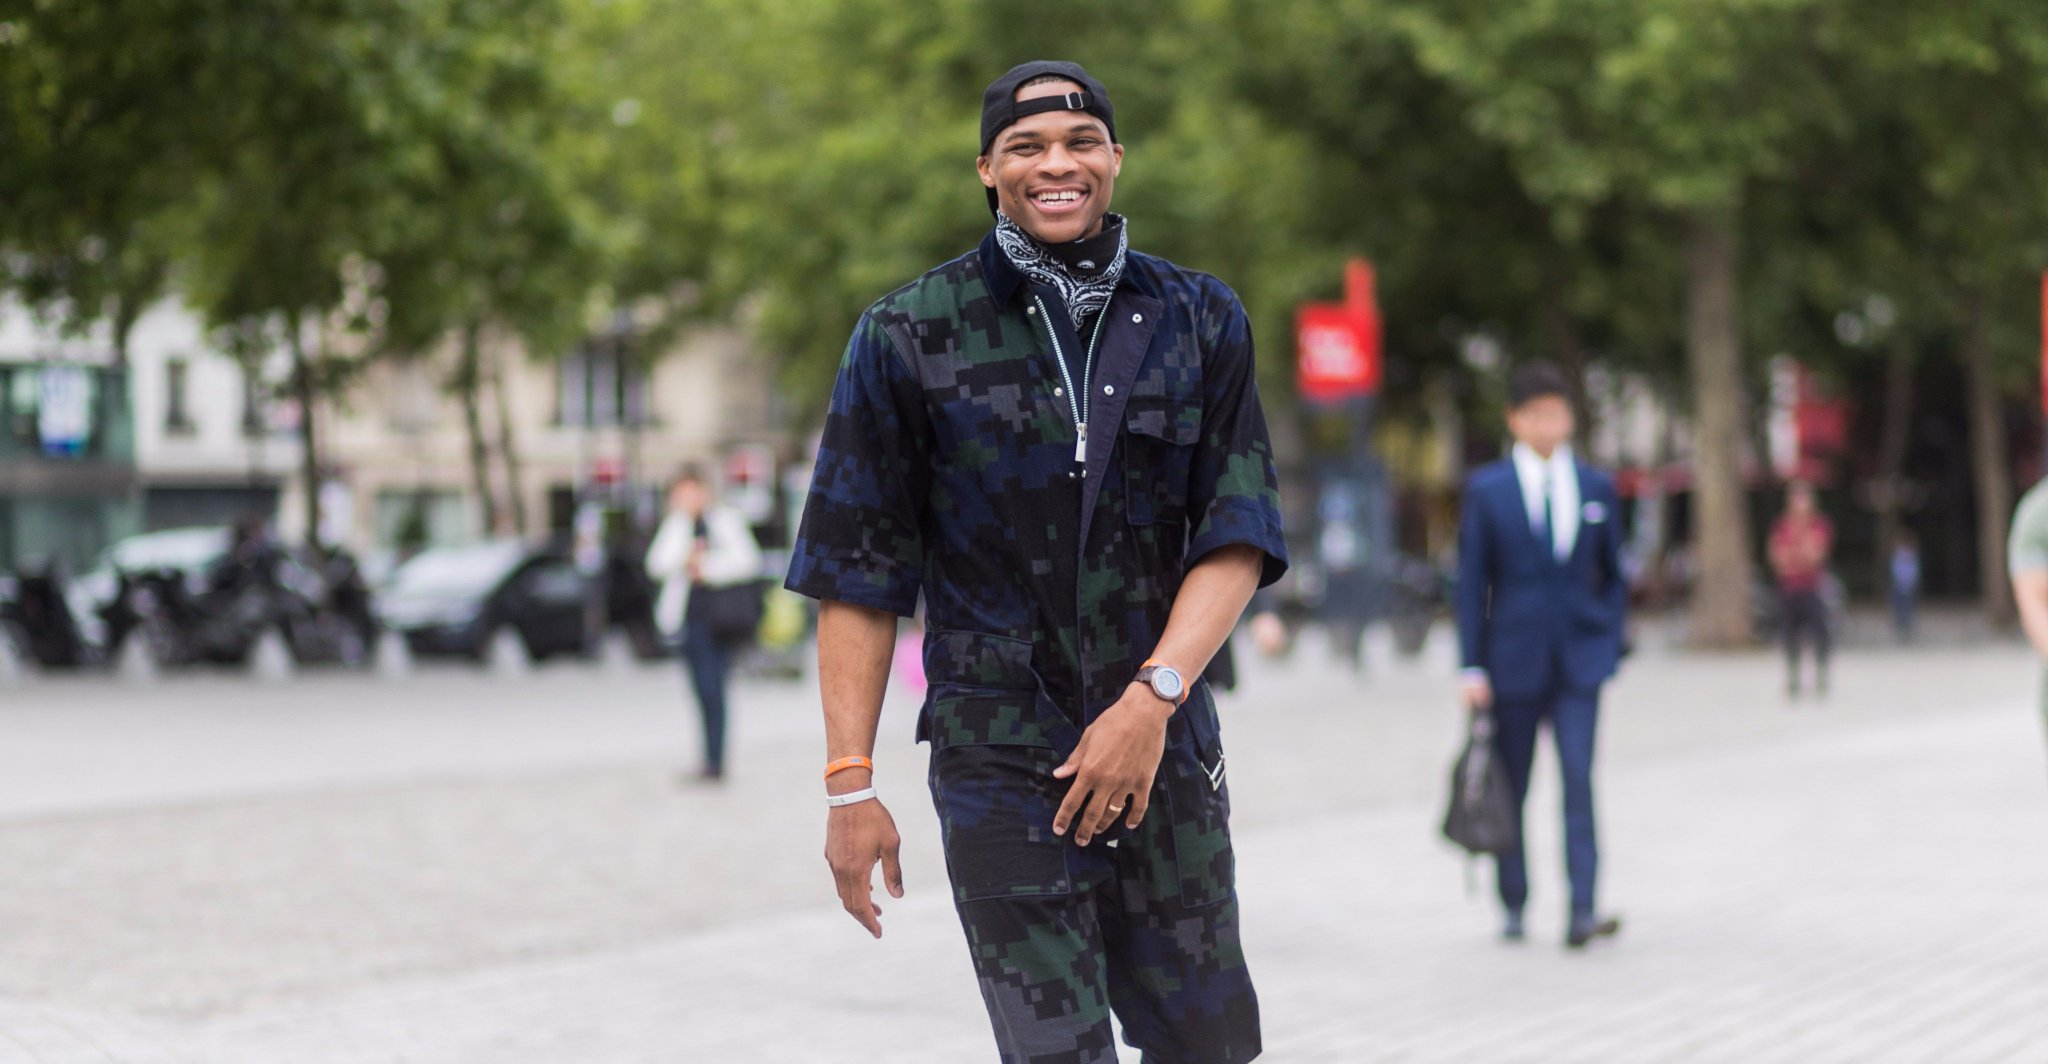 Why not?  Russell Westbrook announces clothing collection, will launch 'within a year' https://t.co/F5xpbbciHB https://t.co/Iuy3D3uTee